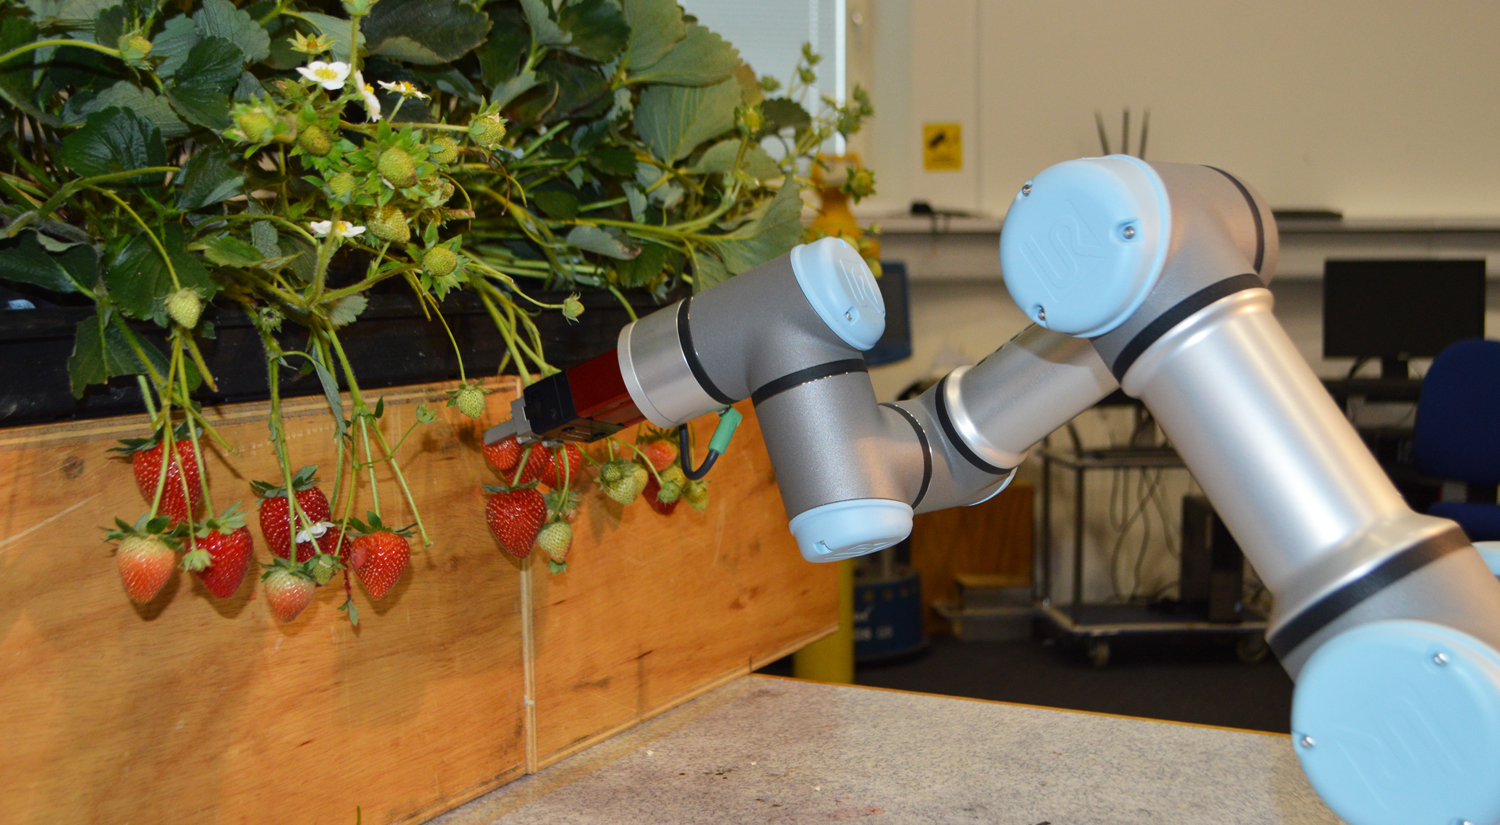 A photo of a state-of-the-art robot arm in silver and pale blue, reaching towards some strawberries on stems hanging over the edge of a wooden plant box.